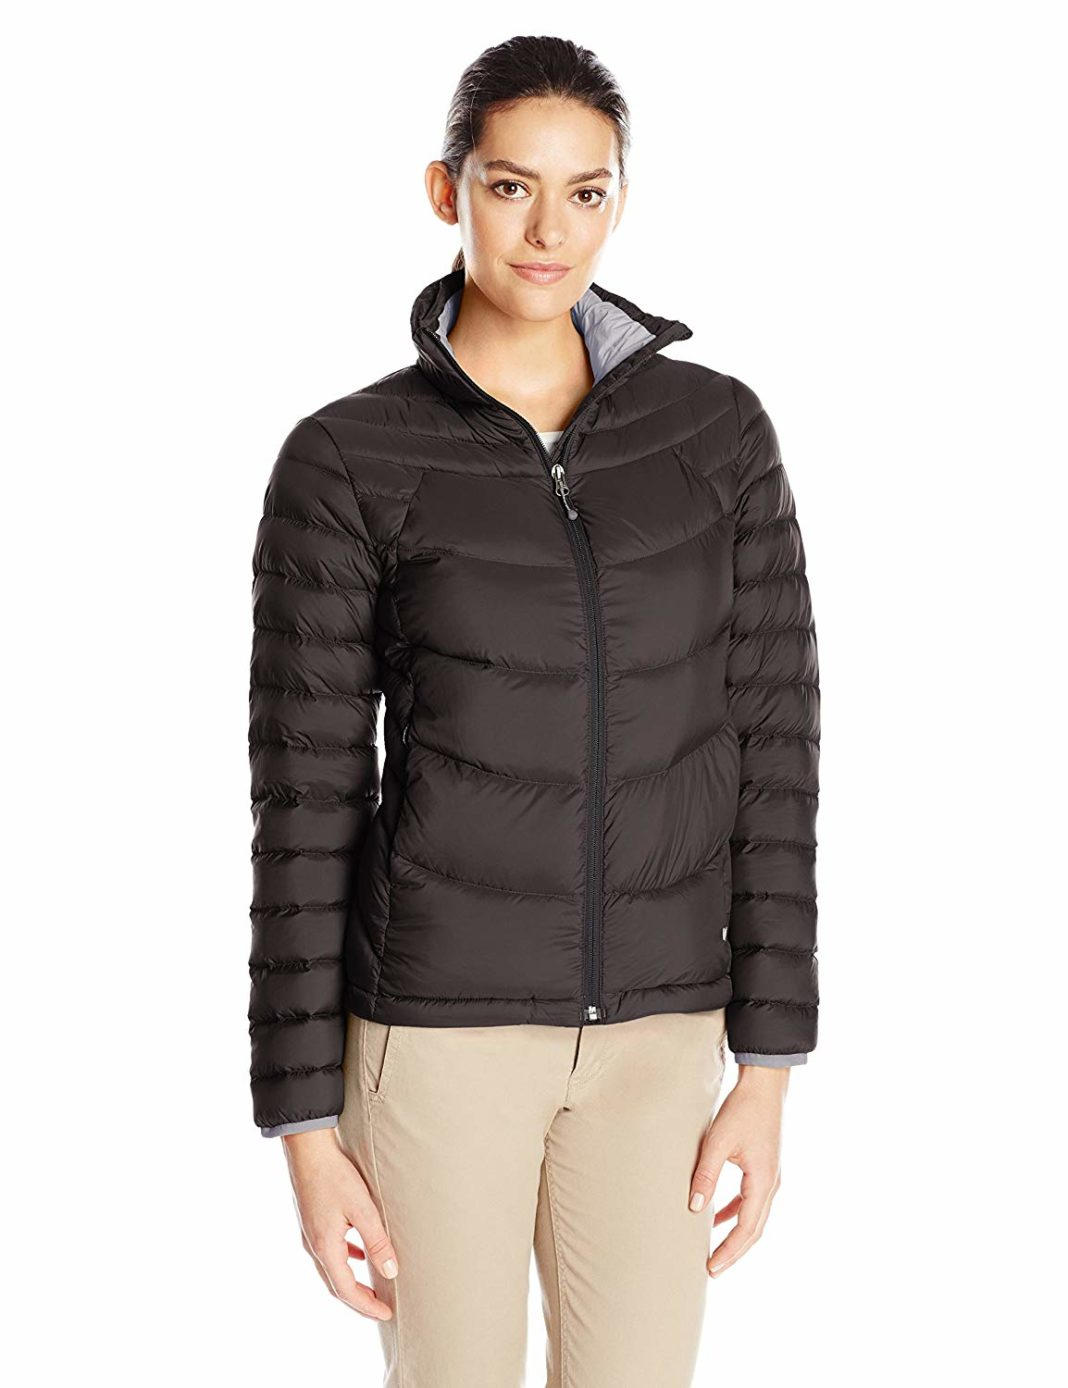 best down jackets for women - White Sierra